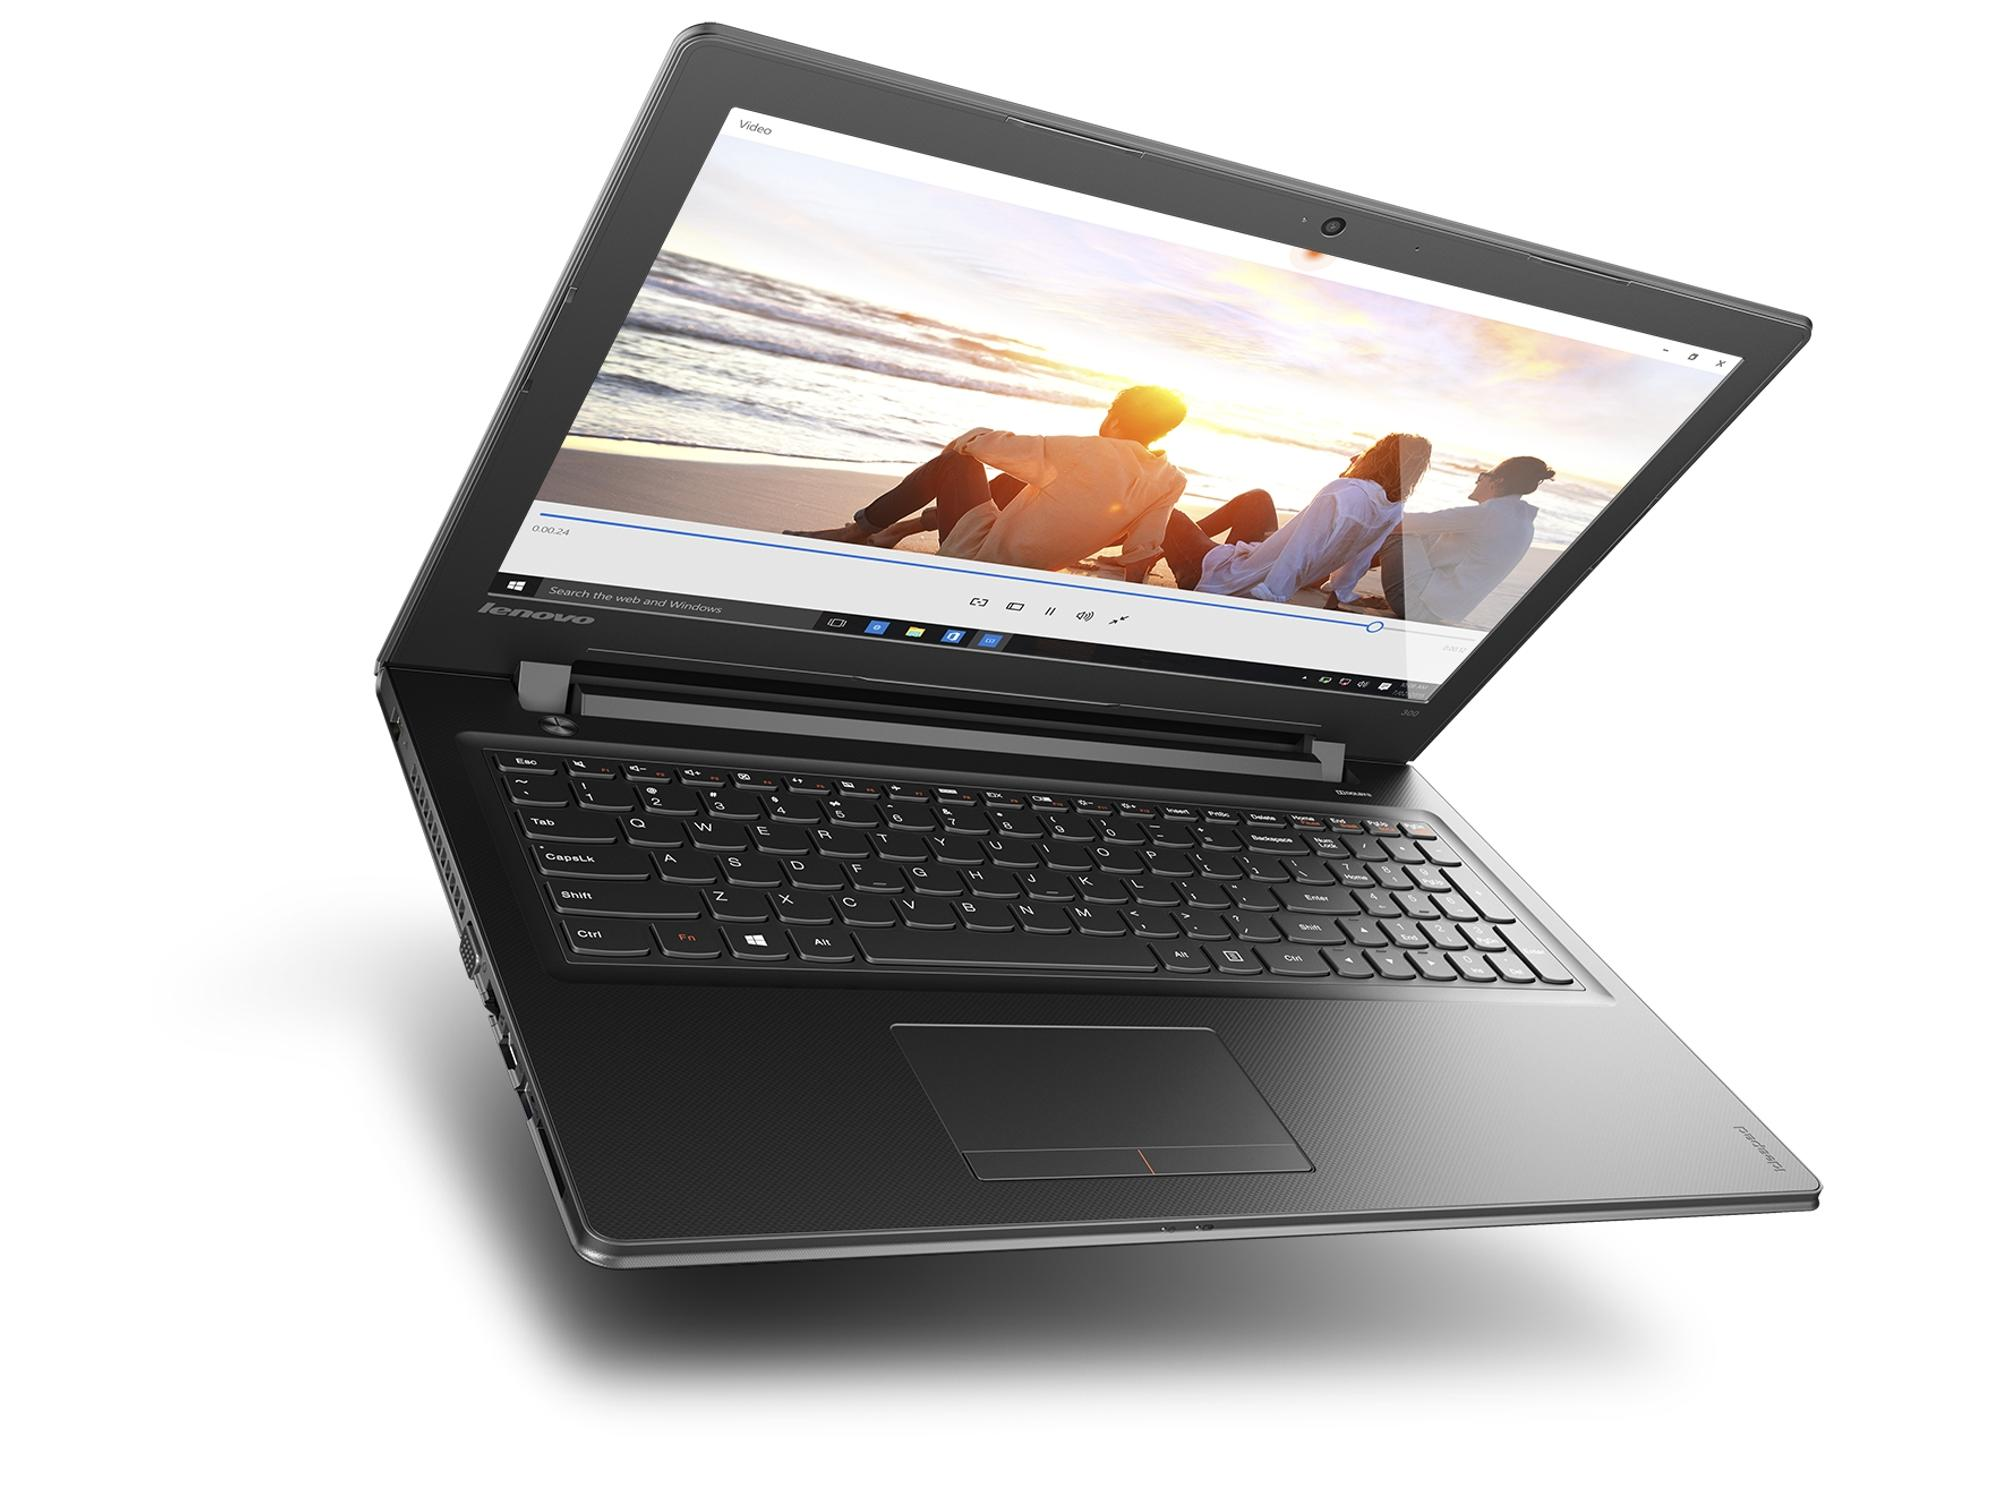 Portátil Lenovo IdeaPad 300 15ISK 80Q700G3SP Intel Core i7 4GB 1TB